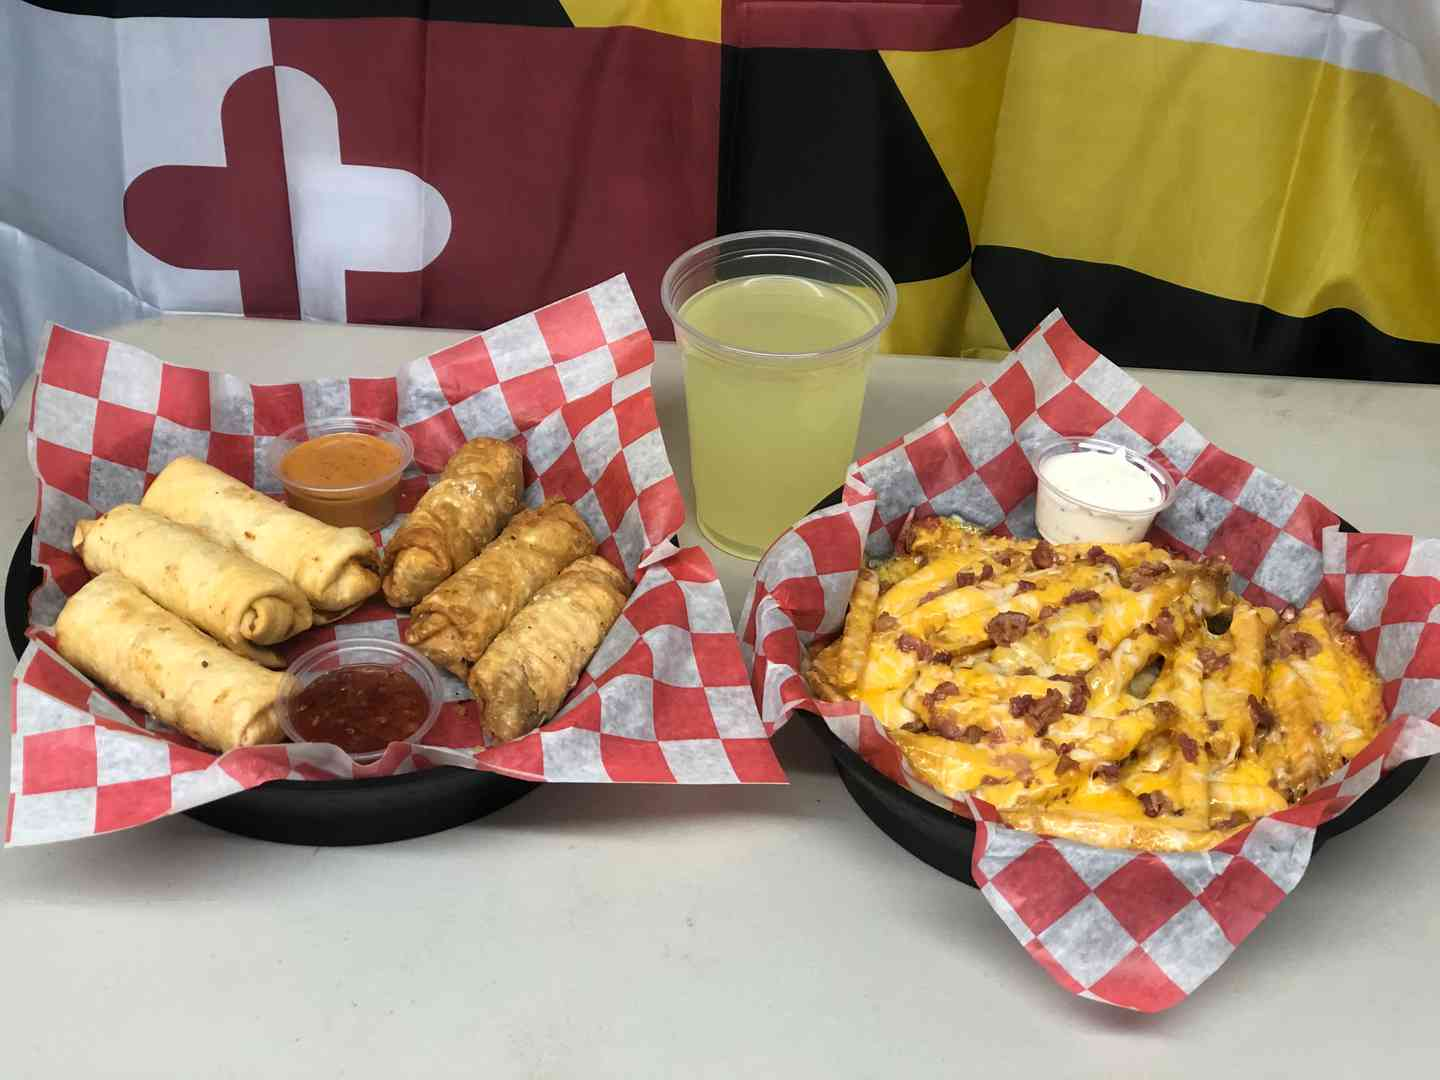 Tuesday - Steak and Cheese or Chicken Sante Fe Eggrolls Basket